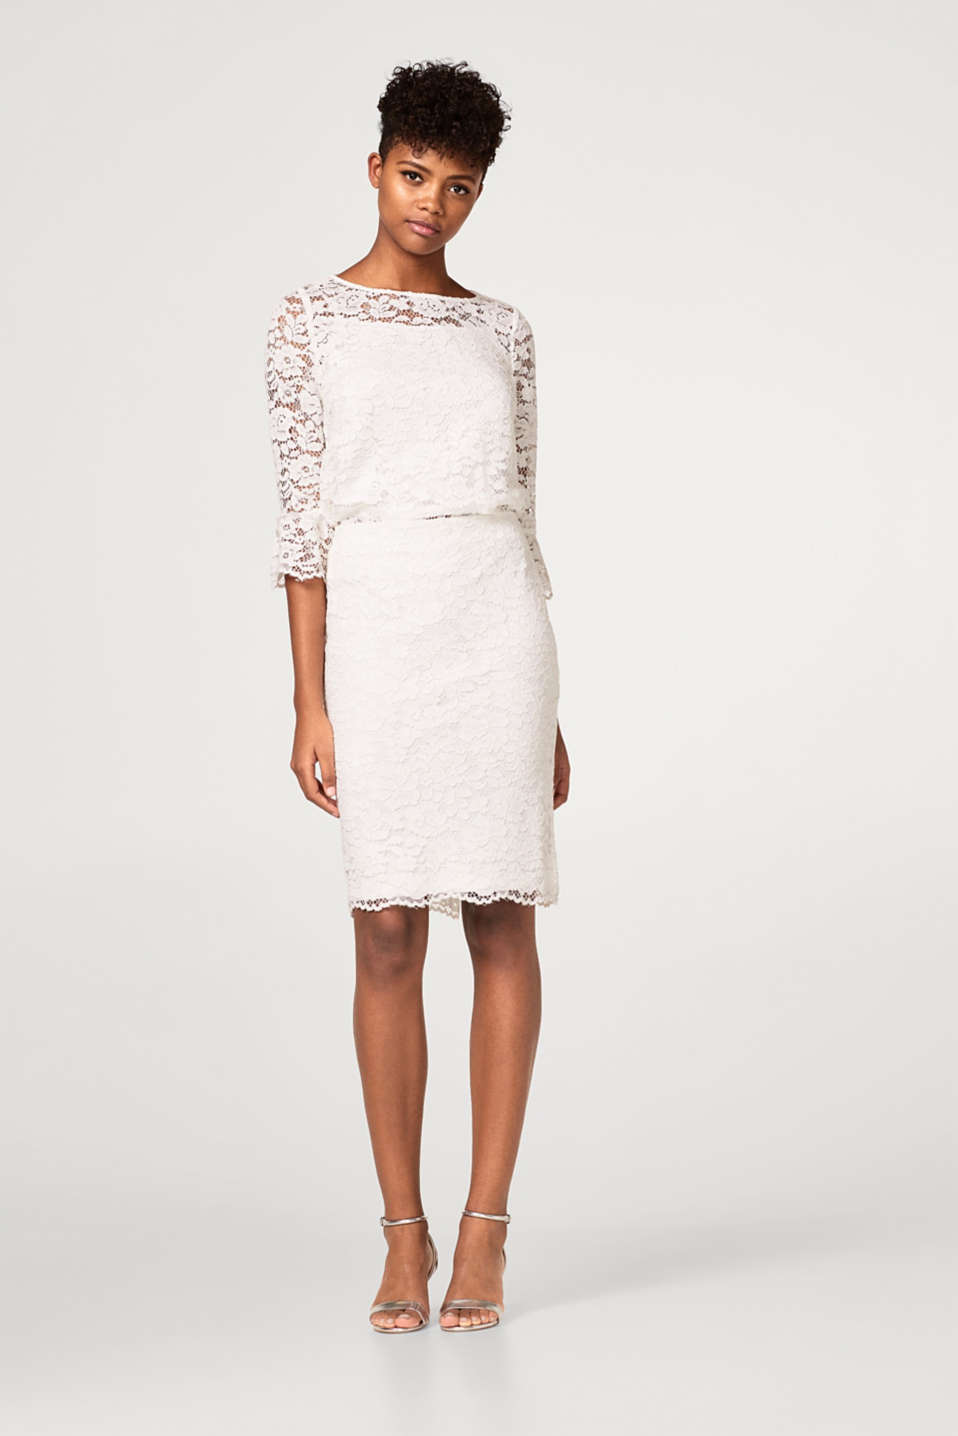 Sheath skirt in floral lace